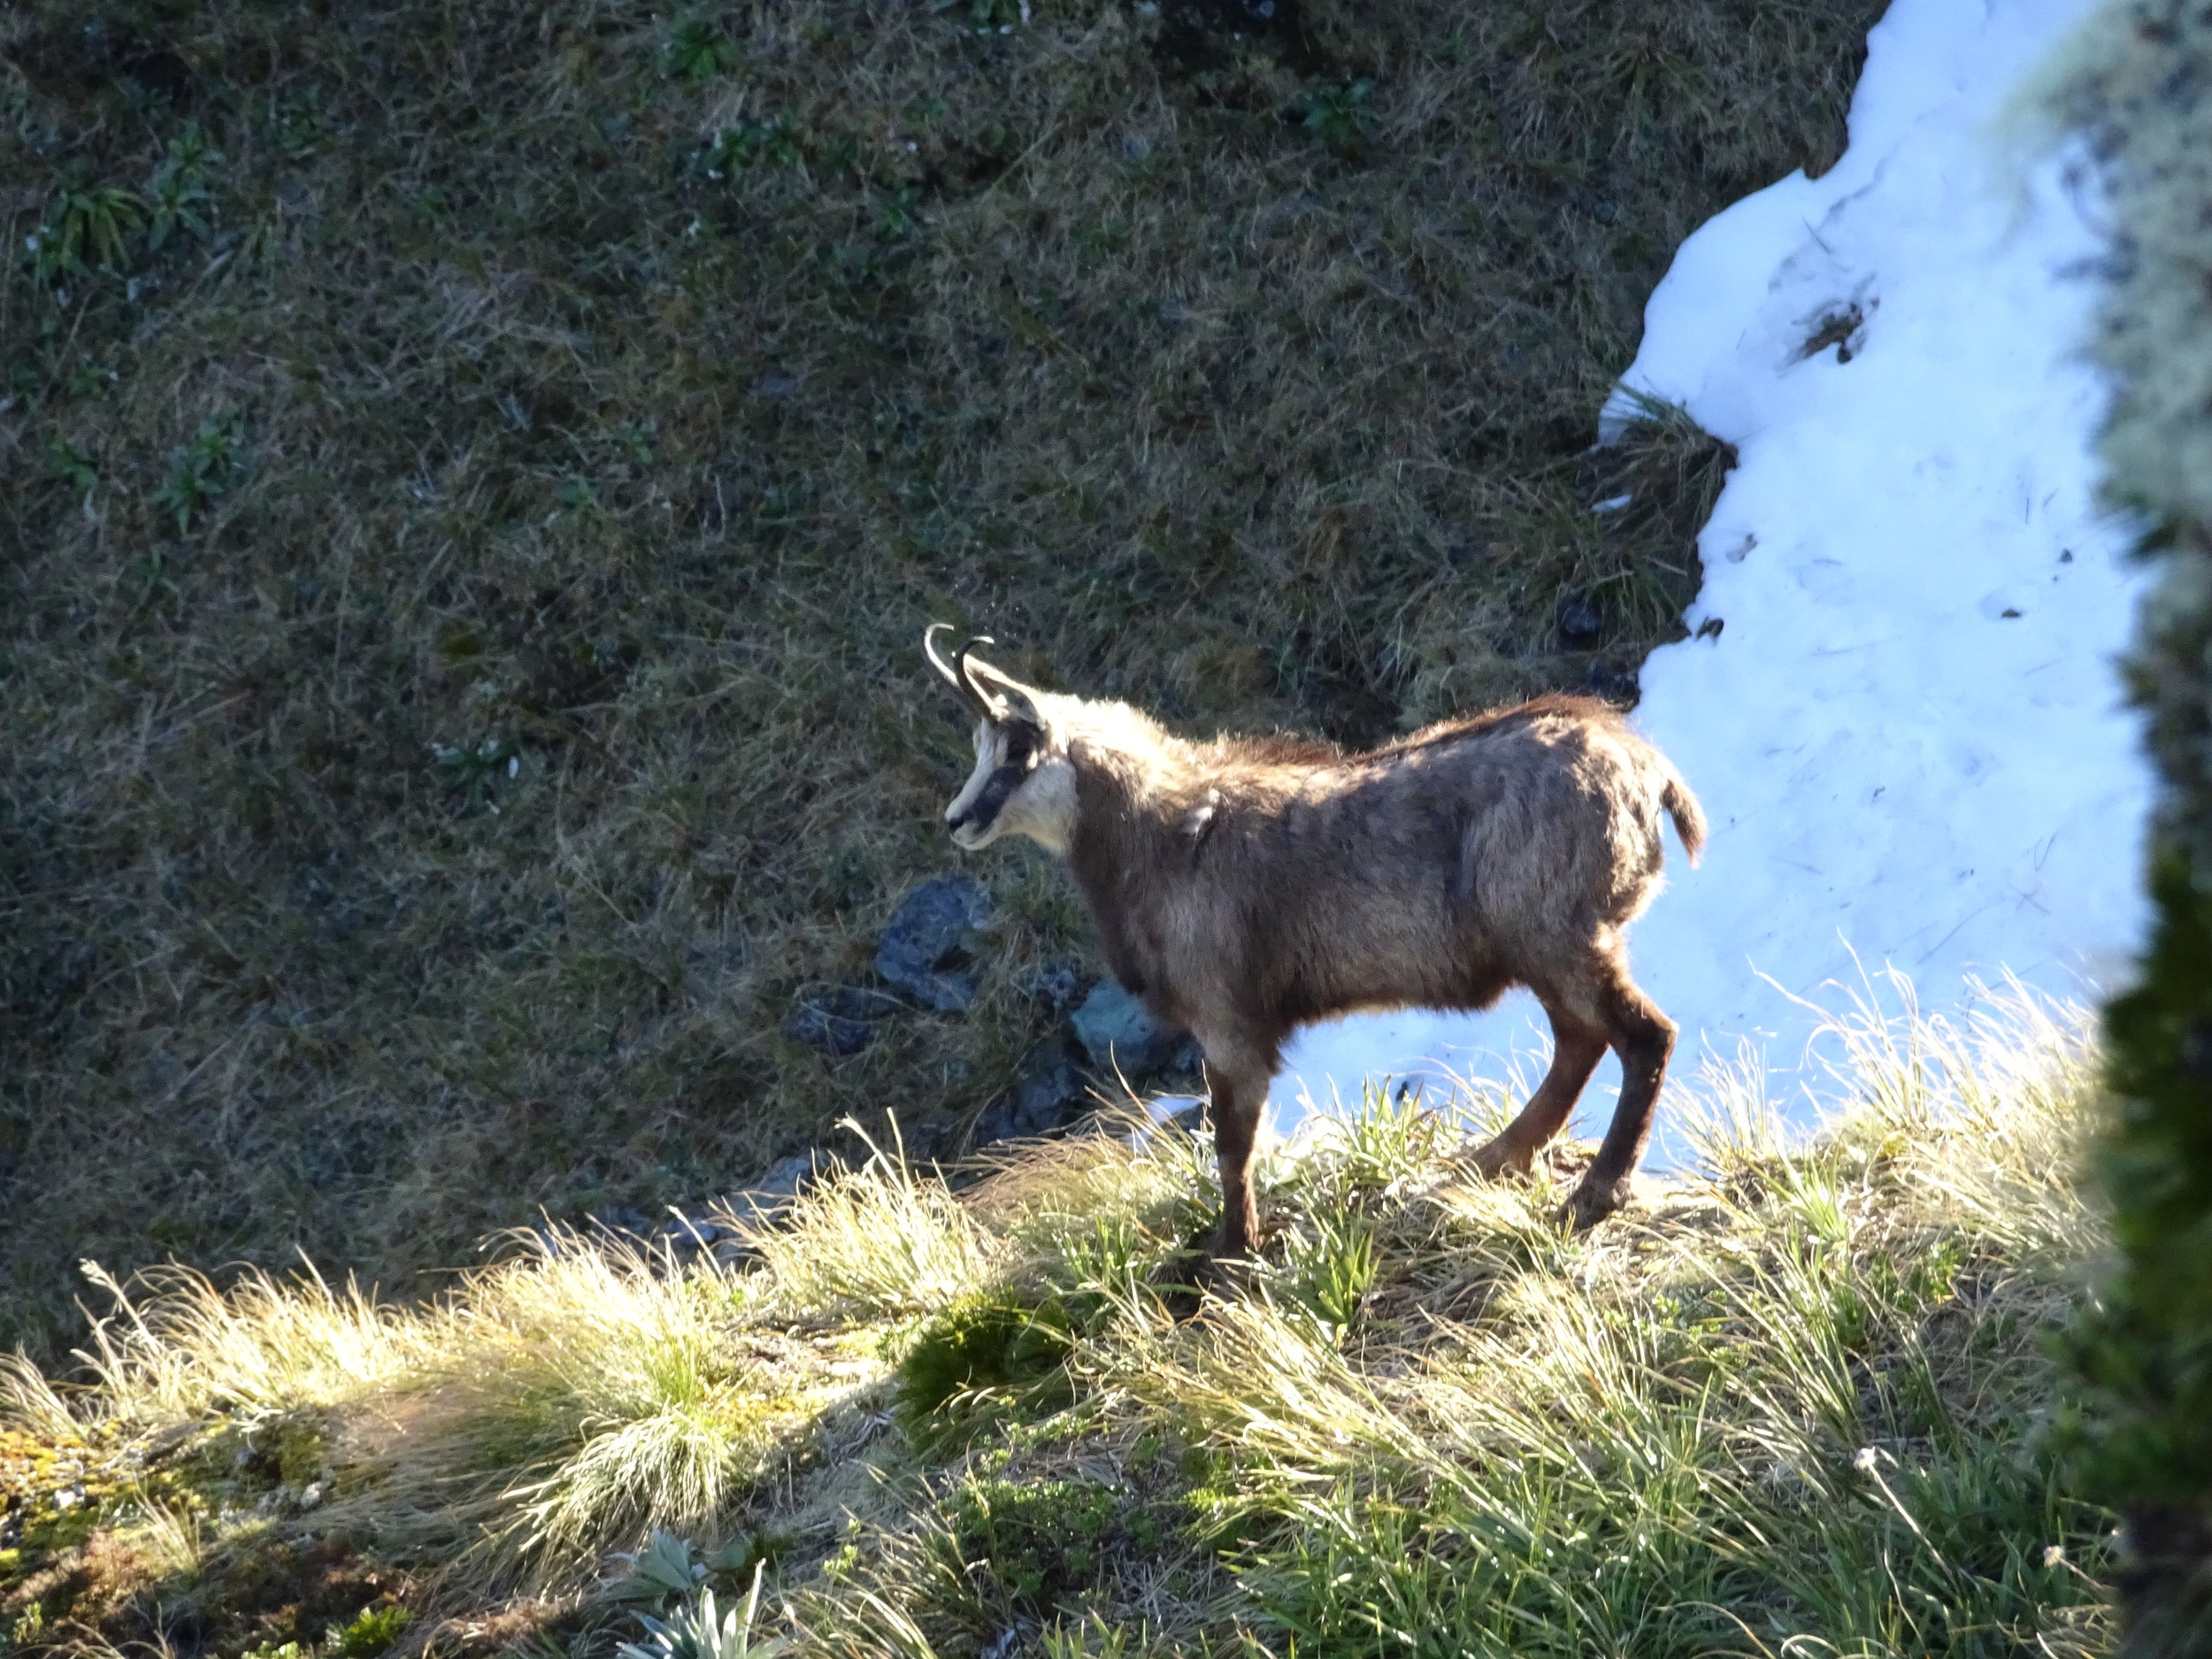 The photo that started the topic. This is an old female, and a good example of how easy it is to get it wrong. Upon first look with the end of season coat the dorsal hair is enhanced and she has a good hook to her horn. The give away is the lack of a visible pizzle against the snow background. She would most likely be heavily pregnant at this time of year and hence looks in good condition. image @ PointsSouth